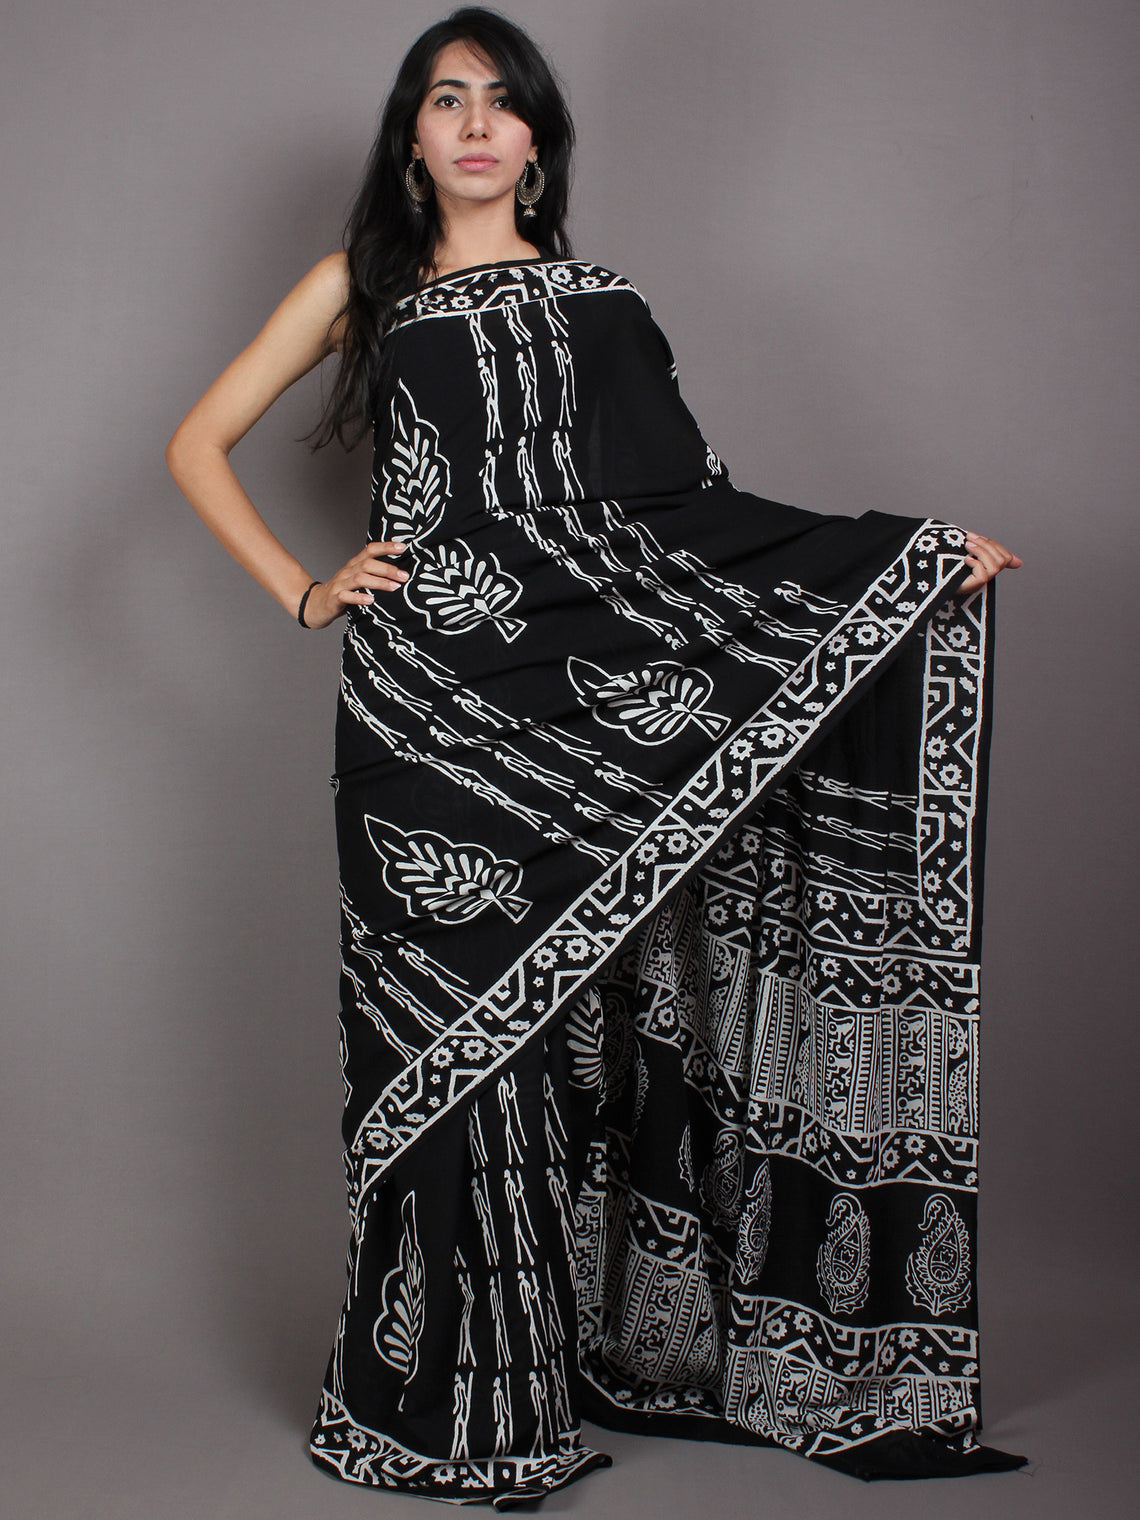 Black White Cotton Hand Block Printed Saree in Natural Colors - S03170523